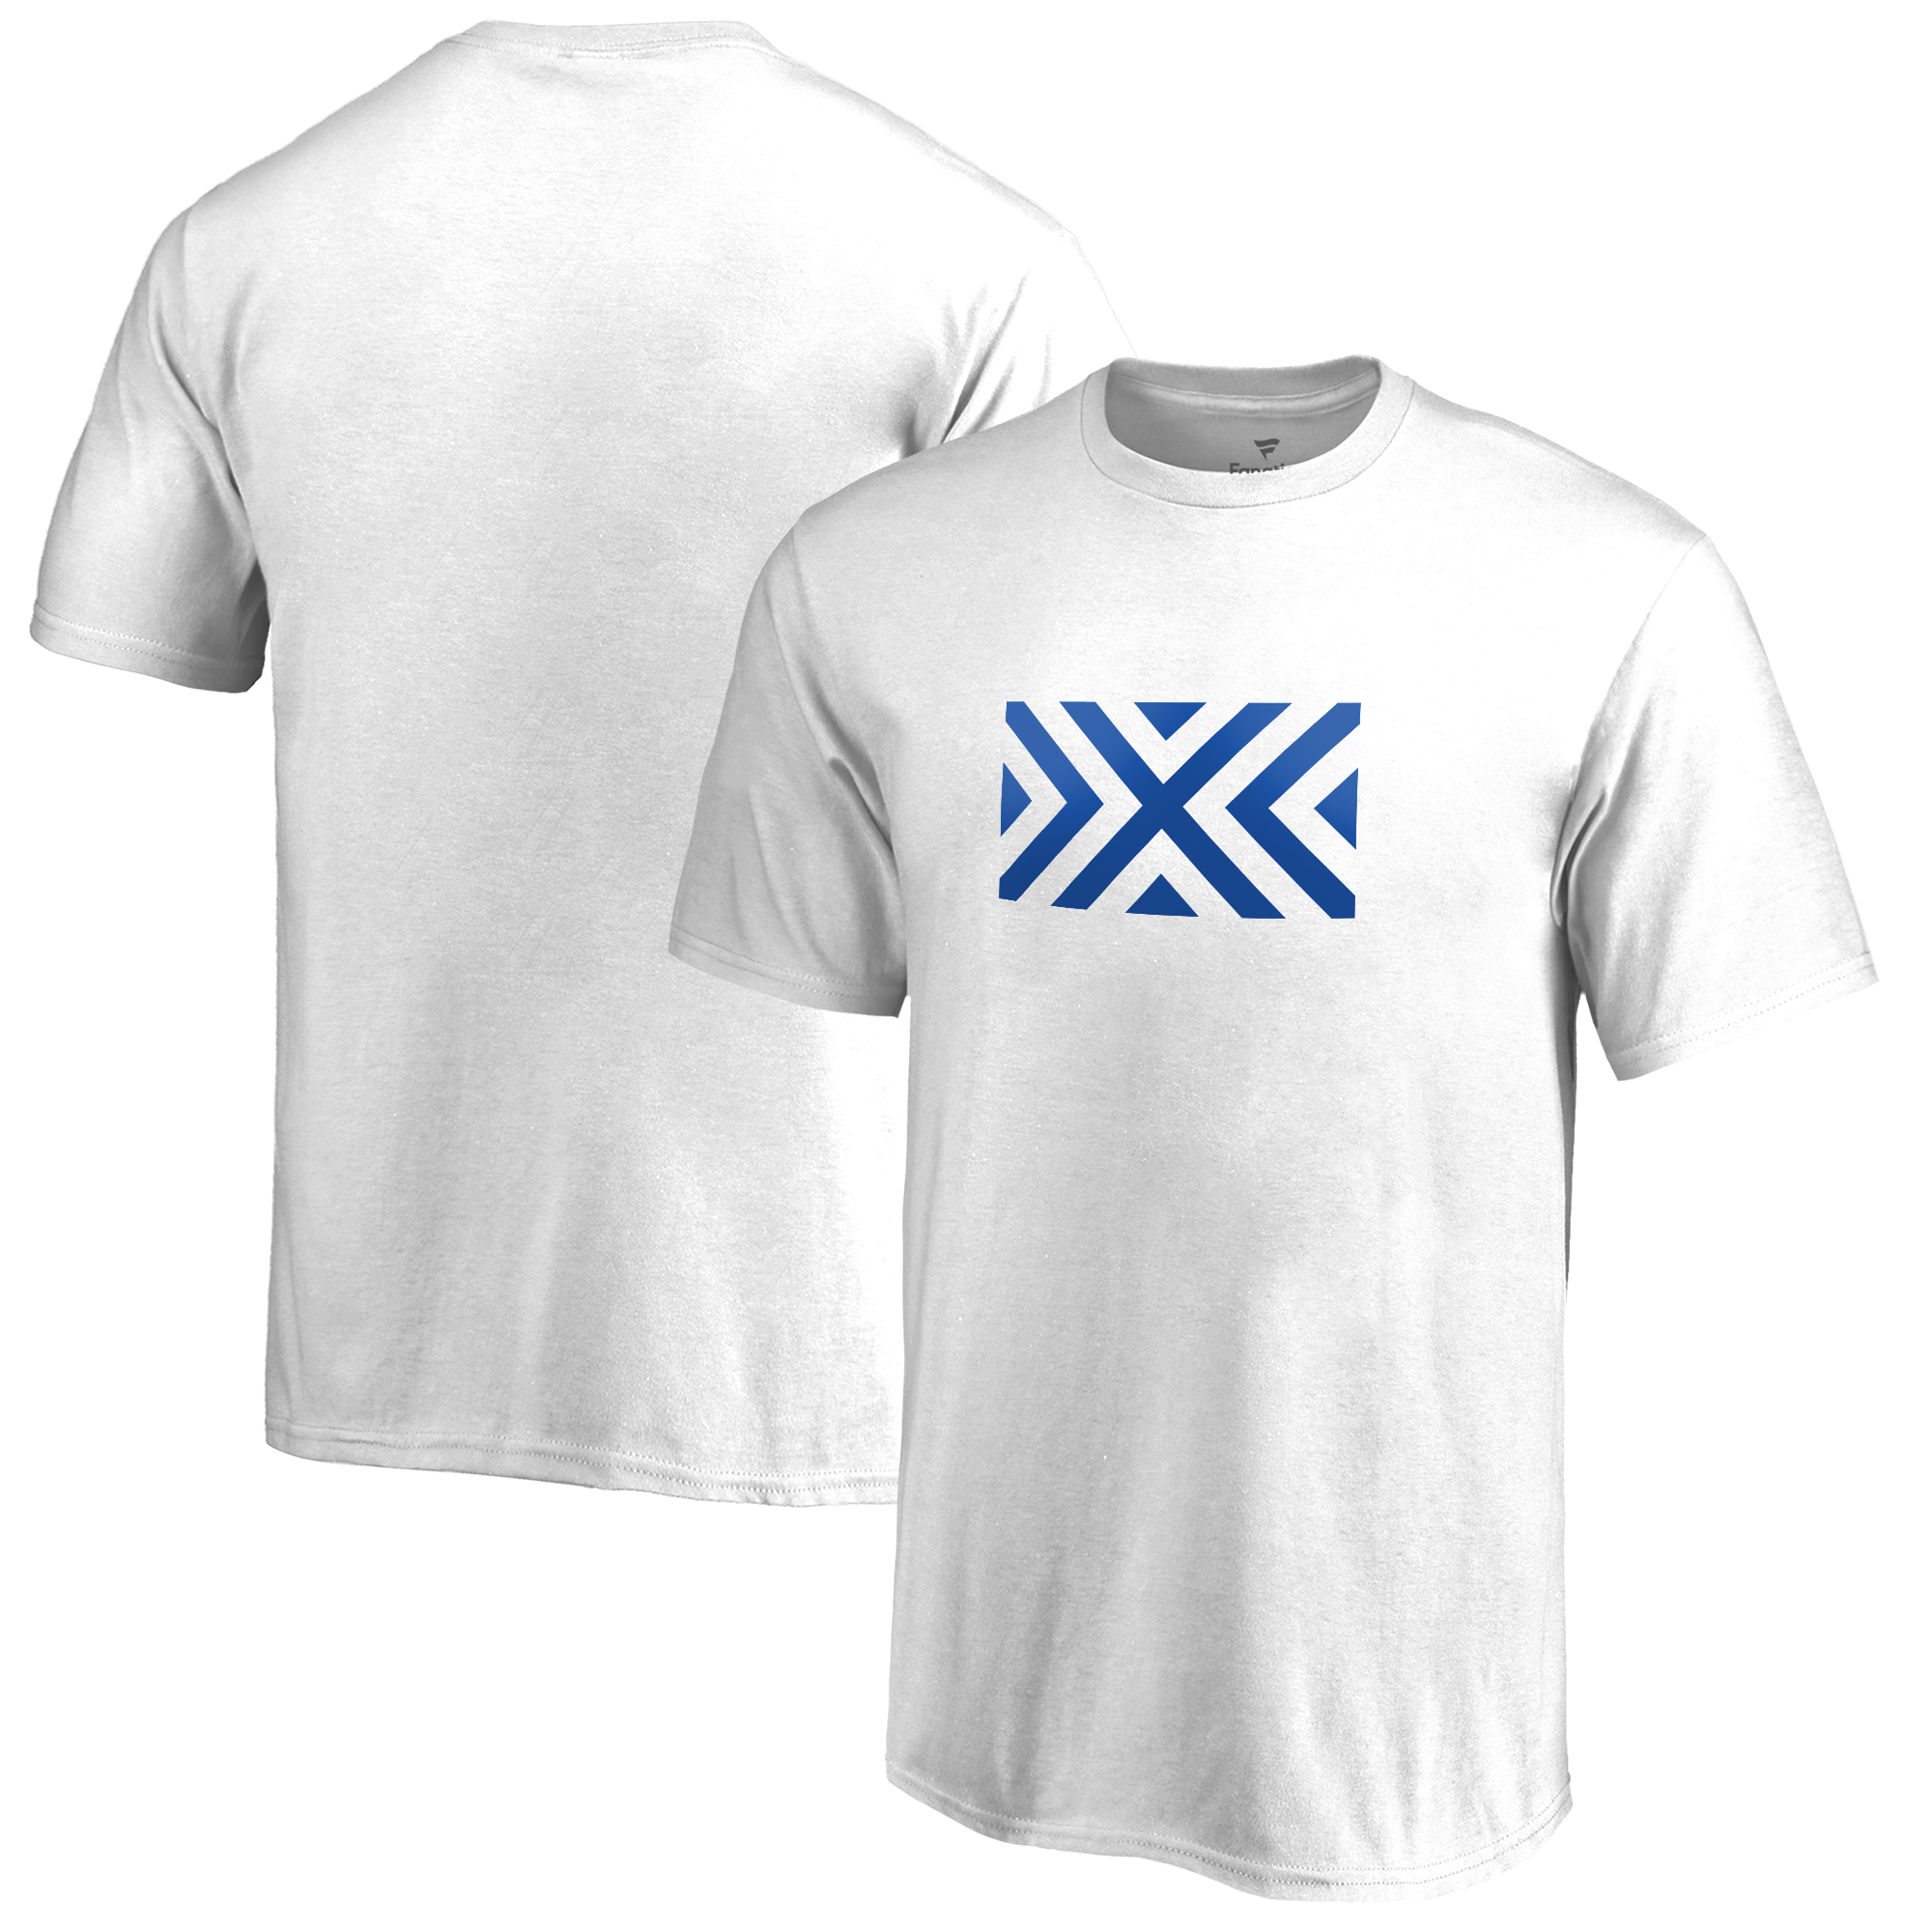 New York Excelsior Fanatics Branded Youth Team Identity T-Shirt - White